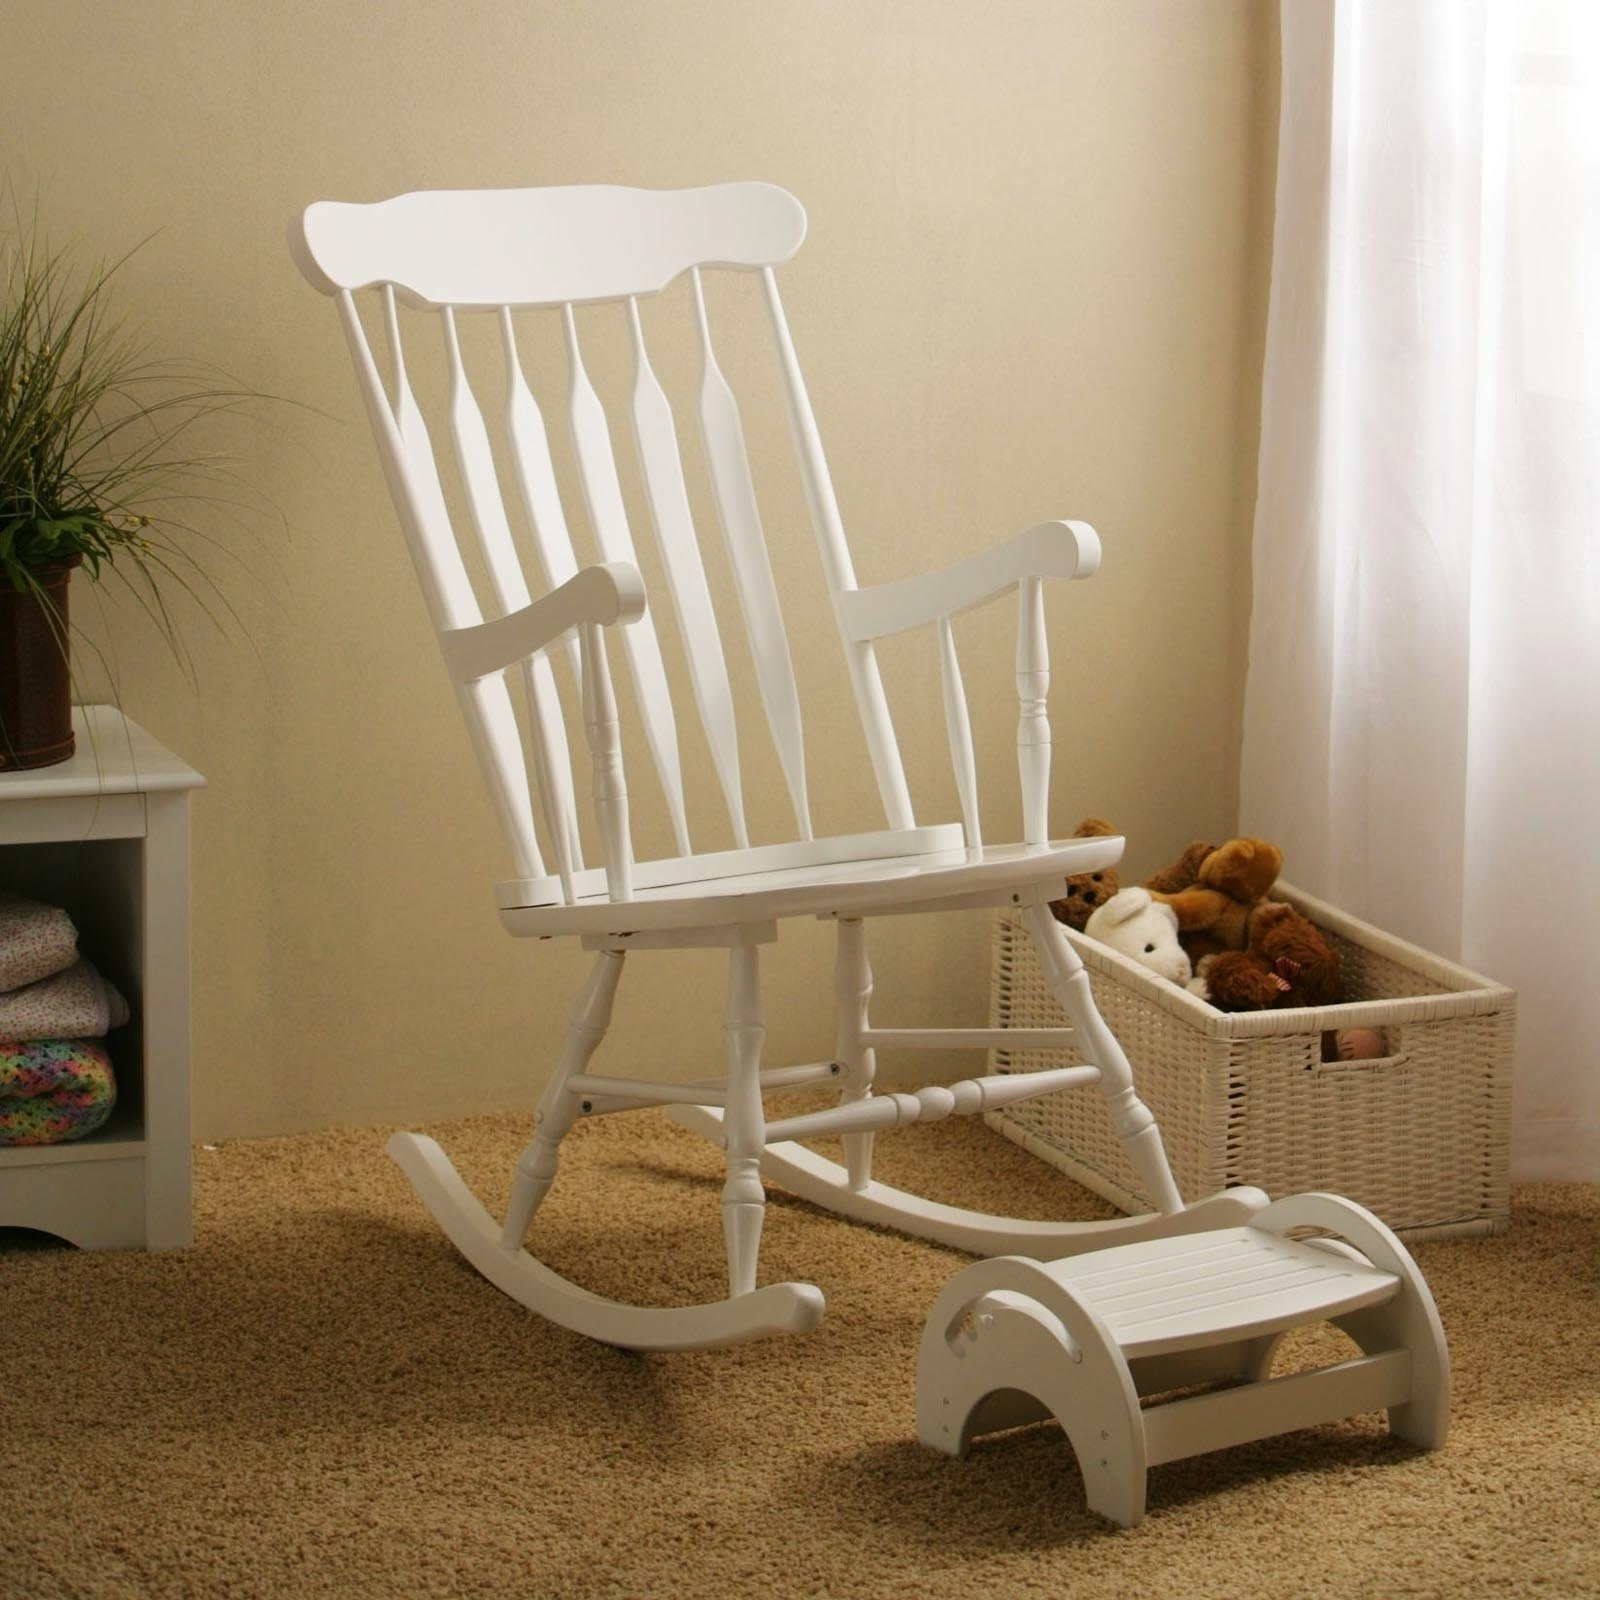 Most Current White Wicker Rocking Chair For Nursery For Wooden Nursing Rocking Chair — Wilson Home Ideas : Making Nursing (View 7 of 15)